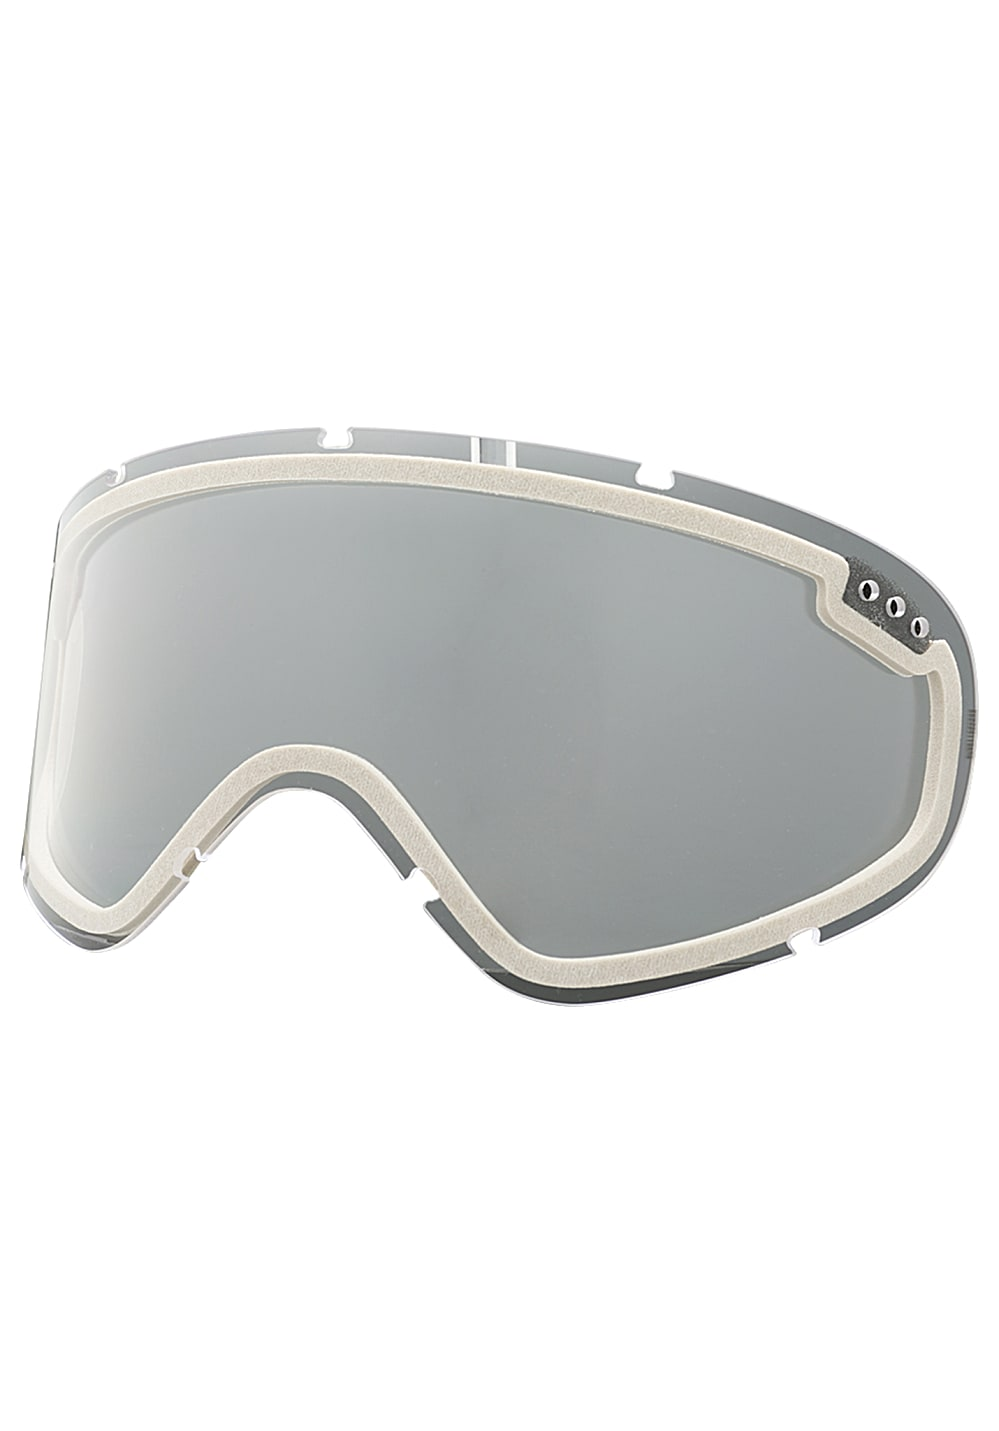 Electric Charger Lens Brille - Weiß